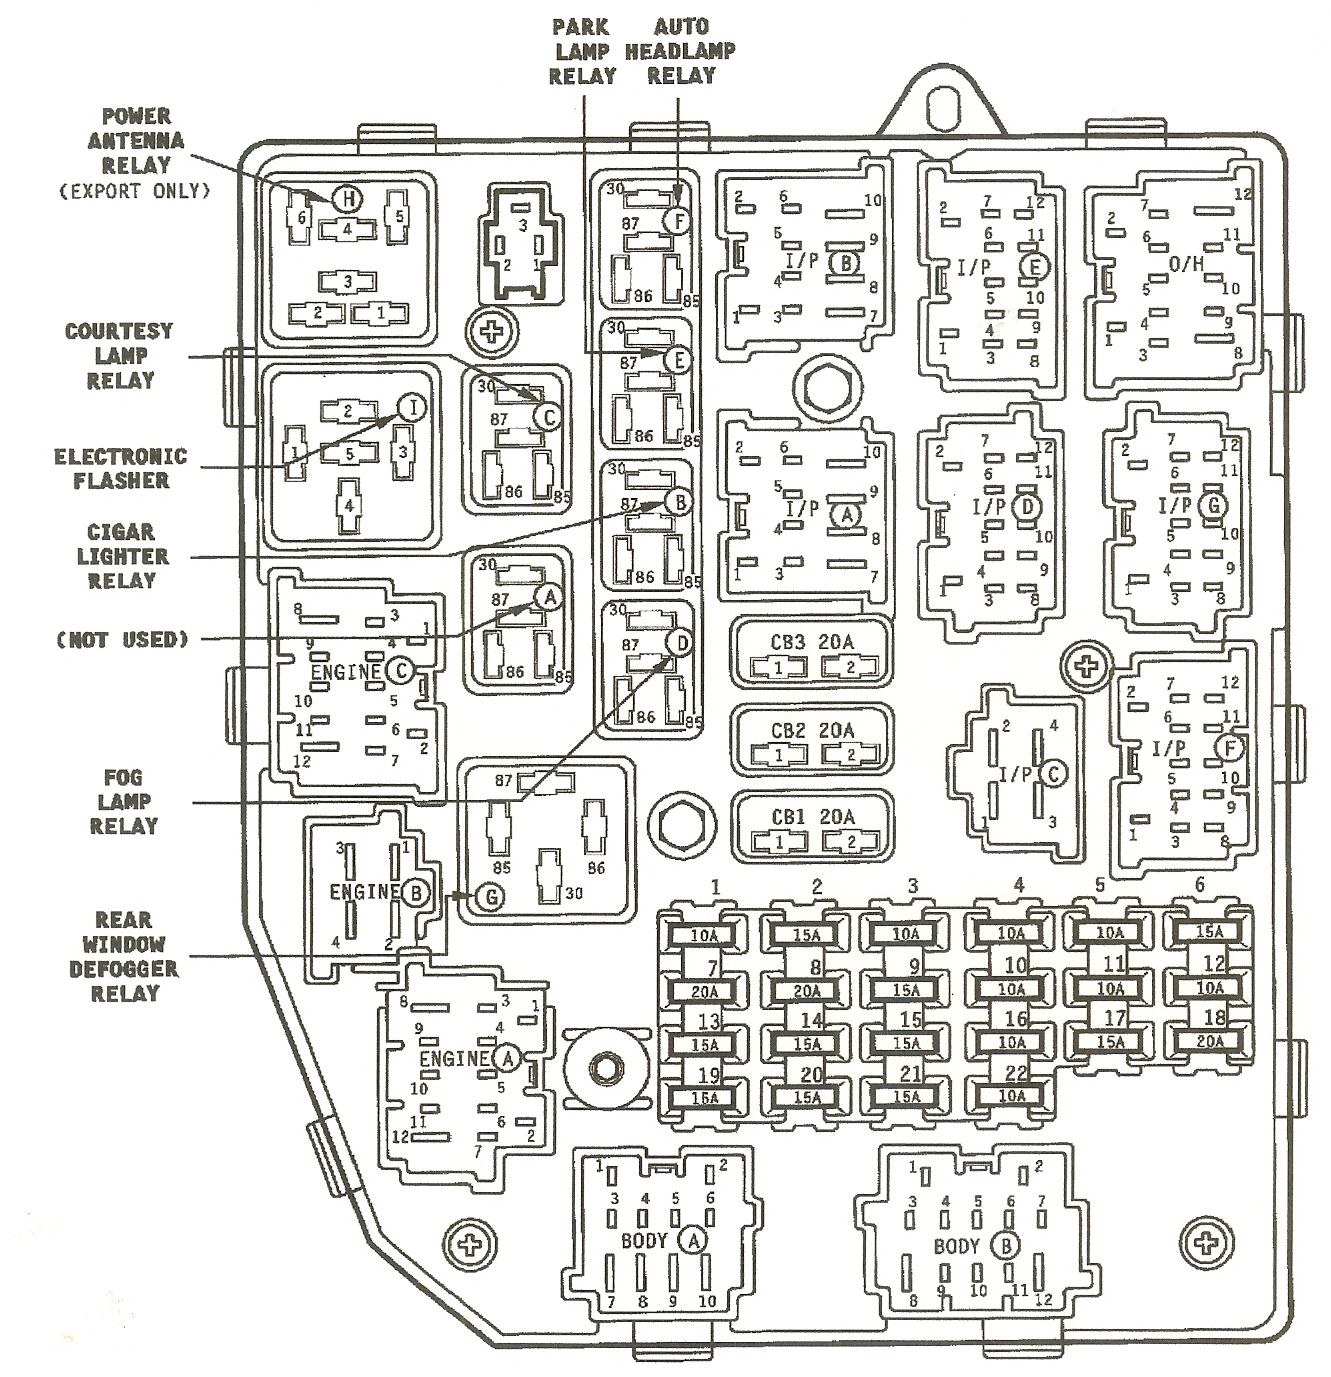 small resolution of 1996 jeep grand cherokee limited fuse box wiring diagram blogs 2000 ford windstar interior fuse box diagram 1996 jeep grand cherokee interior fuse box